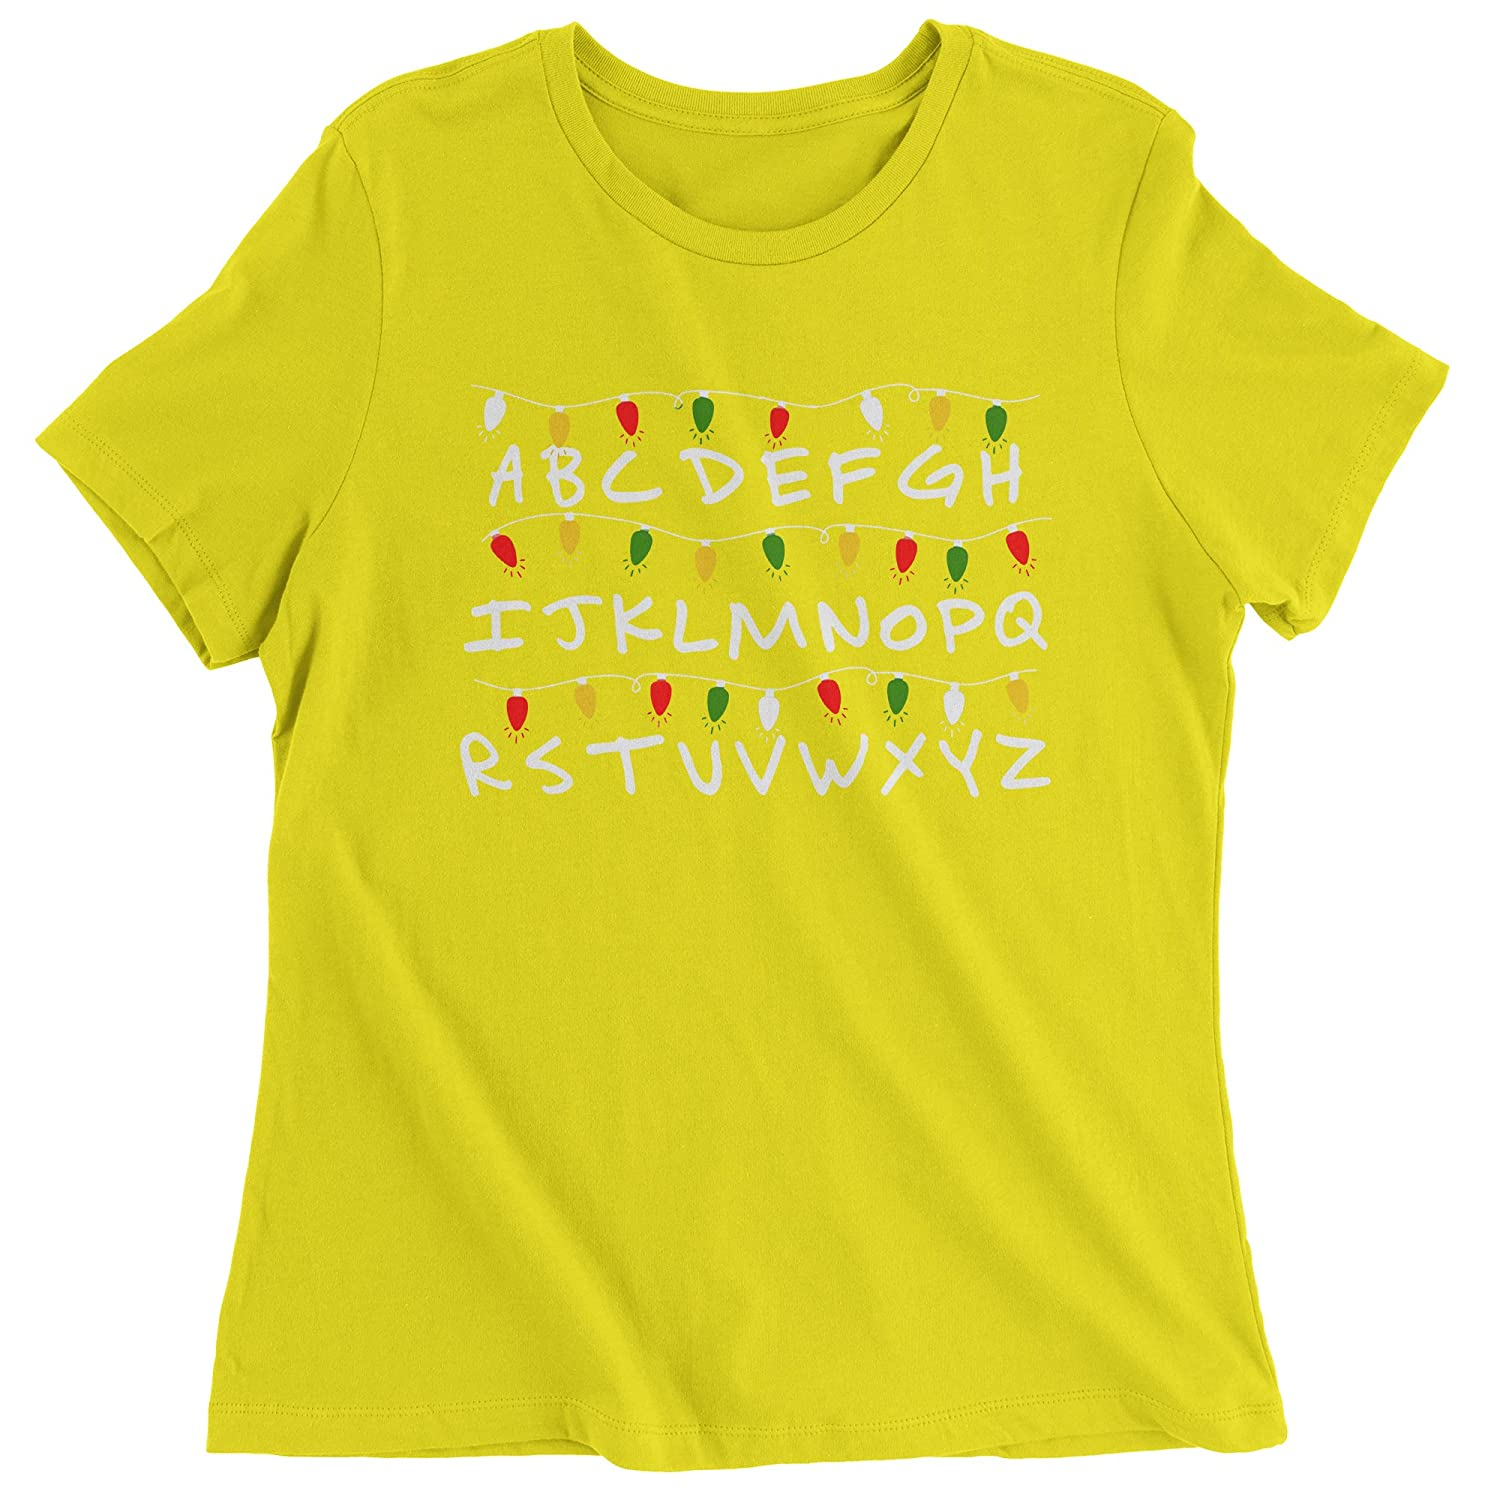 6ba4d8691 Have you ever seen a stranger thing than this? The entire alphabet lit up  by Christmas lights. Full color, vibrant print. Printed and designed in the  U.S.A. ...